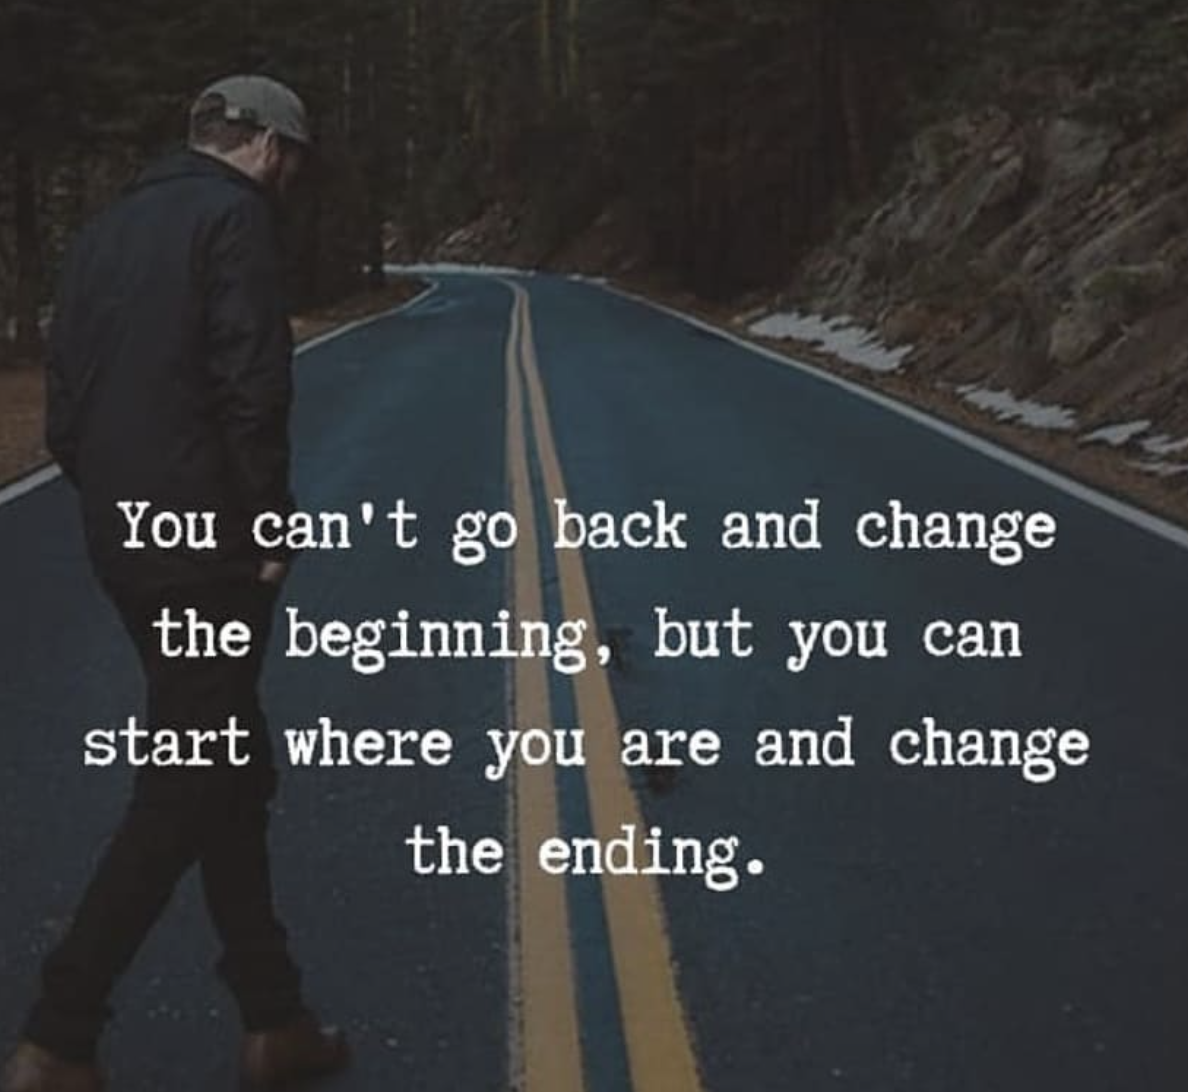 [Image] You can't go back and change the beginning, but you can start where you are and change the ending.